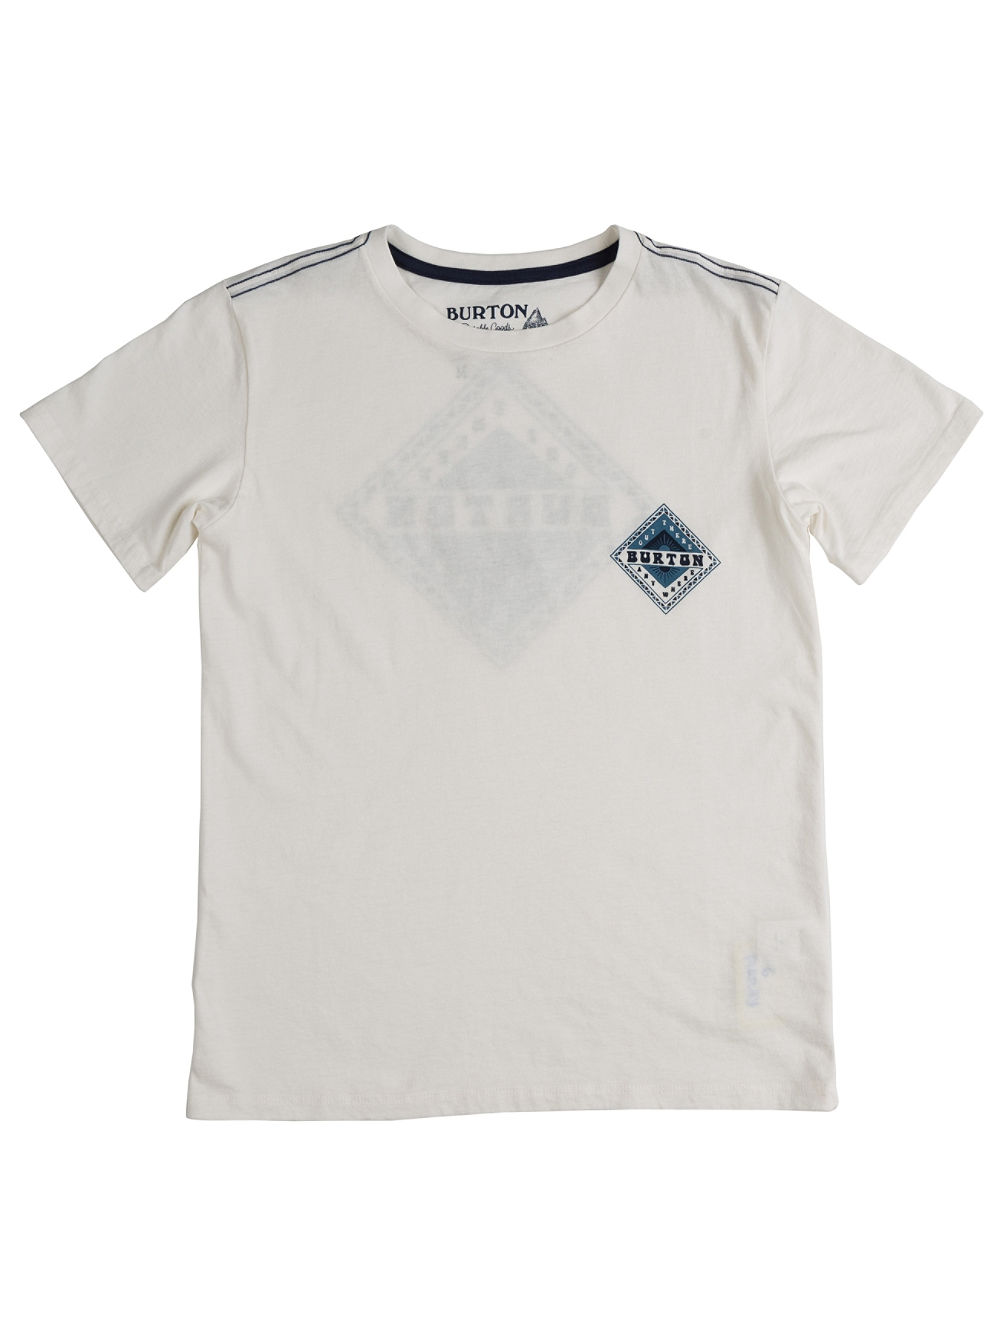 Anchor Point T-Shirt Jungen